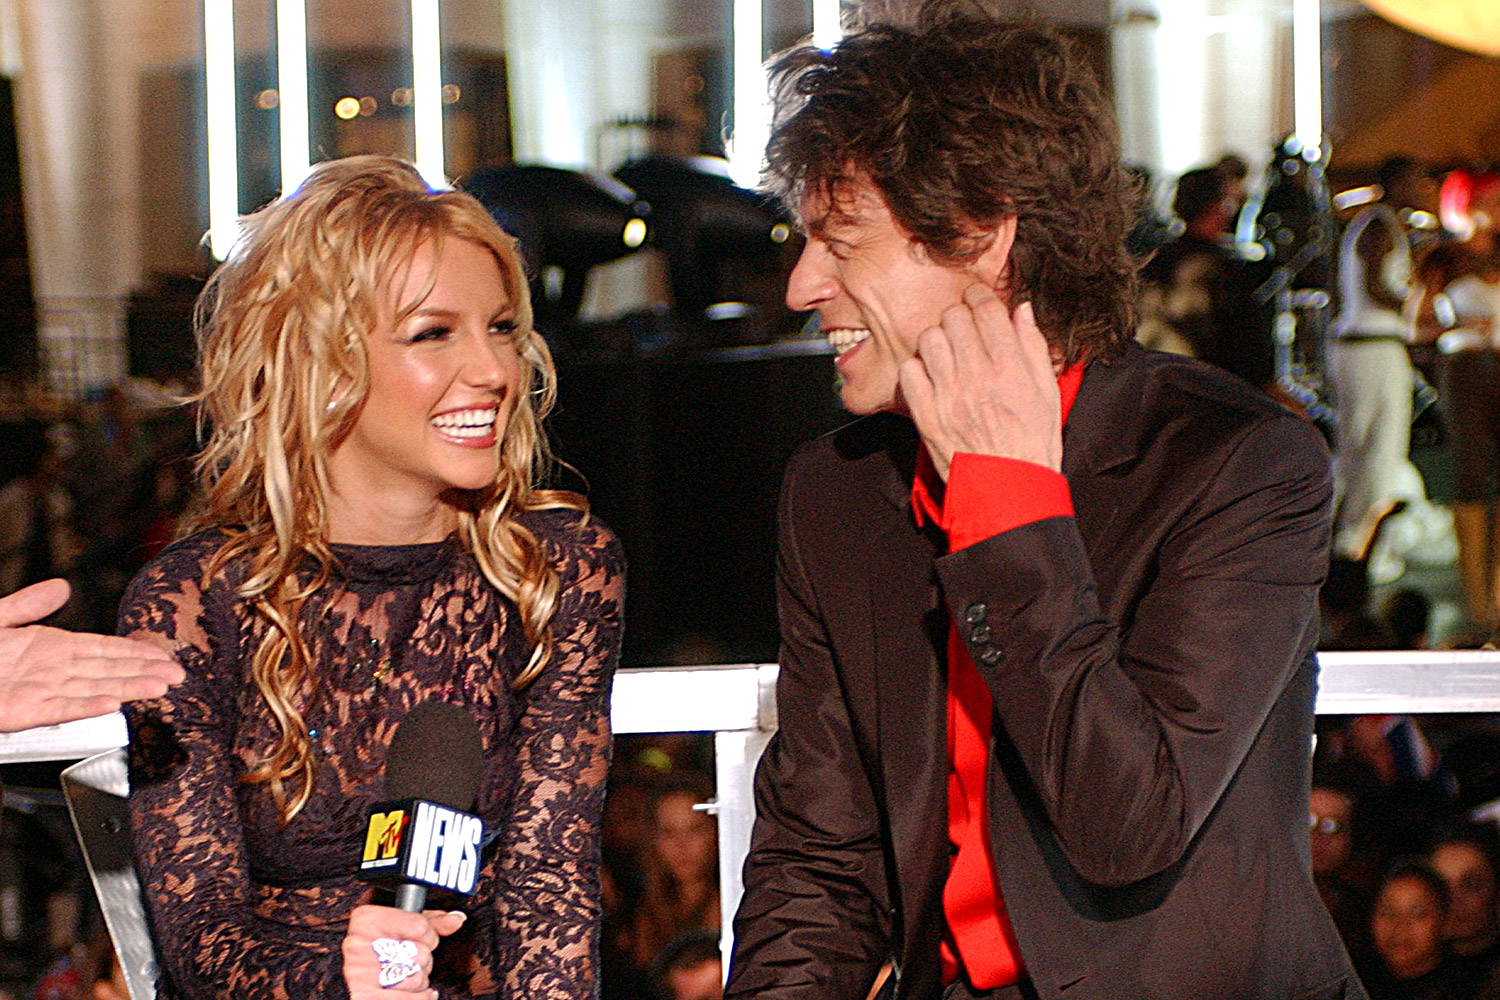 Britney Spears and Mick Jagger